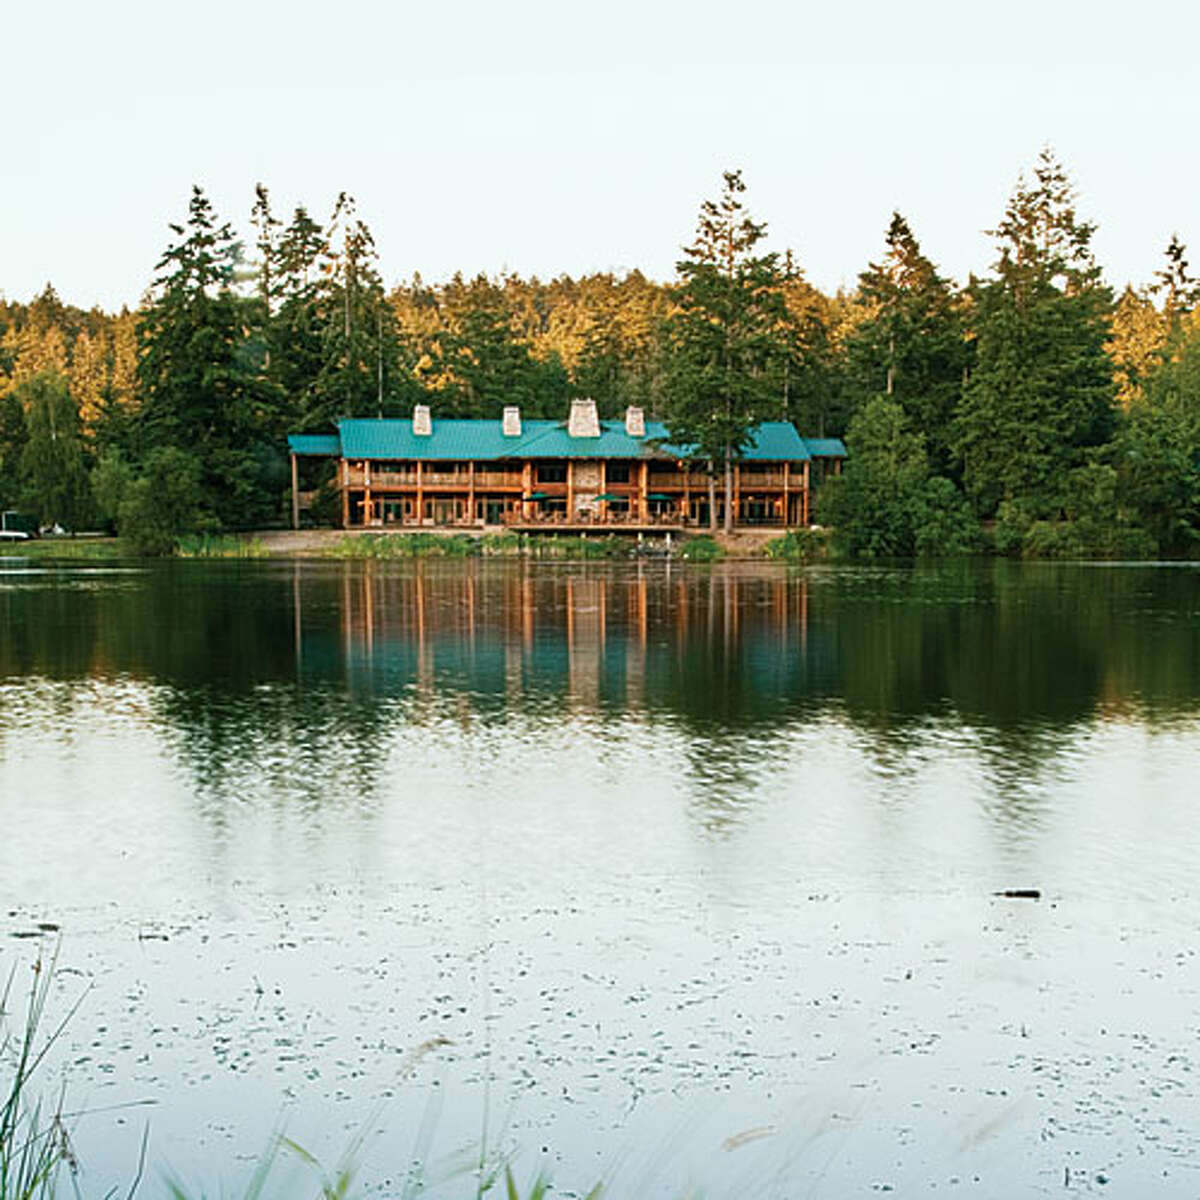 If you're lucky enough to live on or near the islands, we'd suggest taking a ferry to Friday Harbor, where you'll find plenty of swim spots at Lakedale Resort and Campground. Kid-friendly with restroom amenities nearby, you can nab a soda and some snacks from the nearby General Store, too.